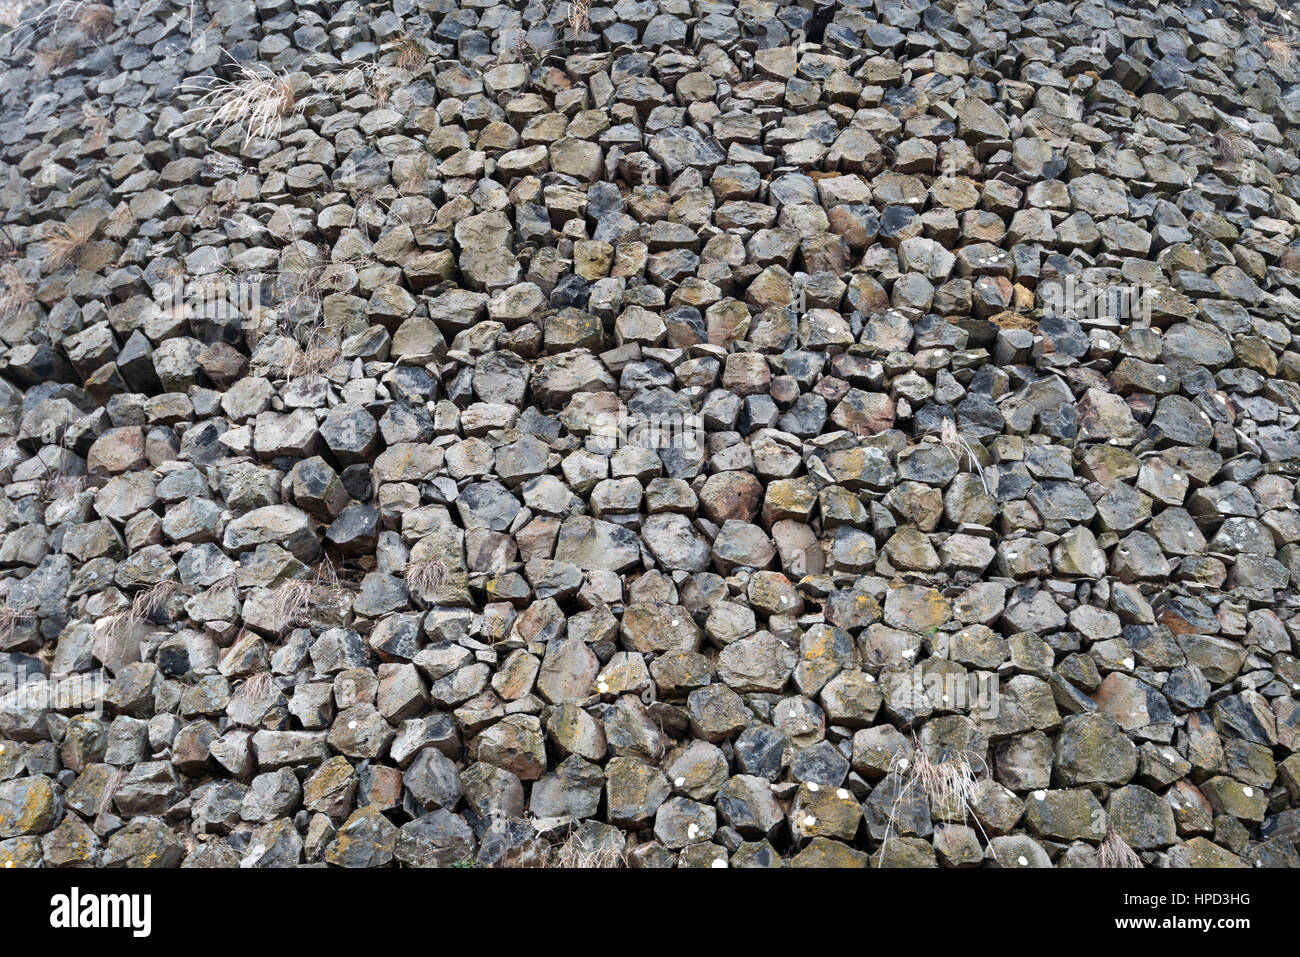 Castle wall of  Somoska made of Basalt rocks - Stock Image